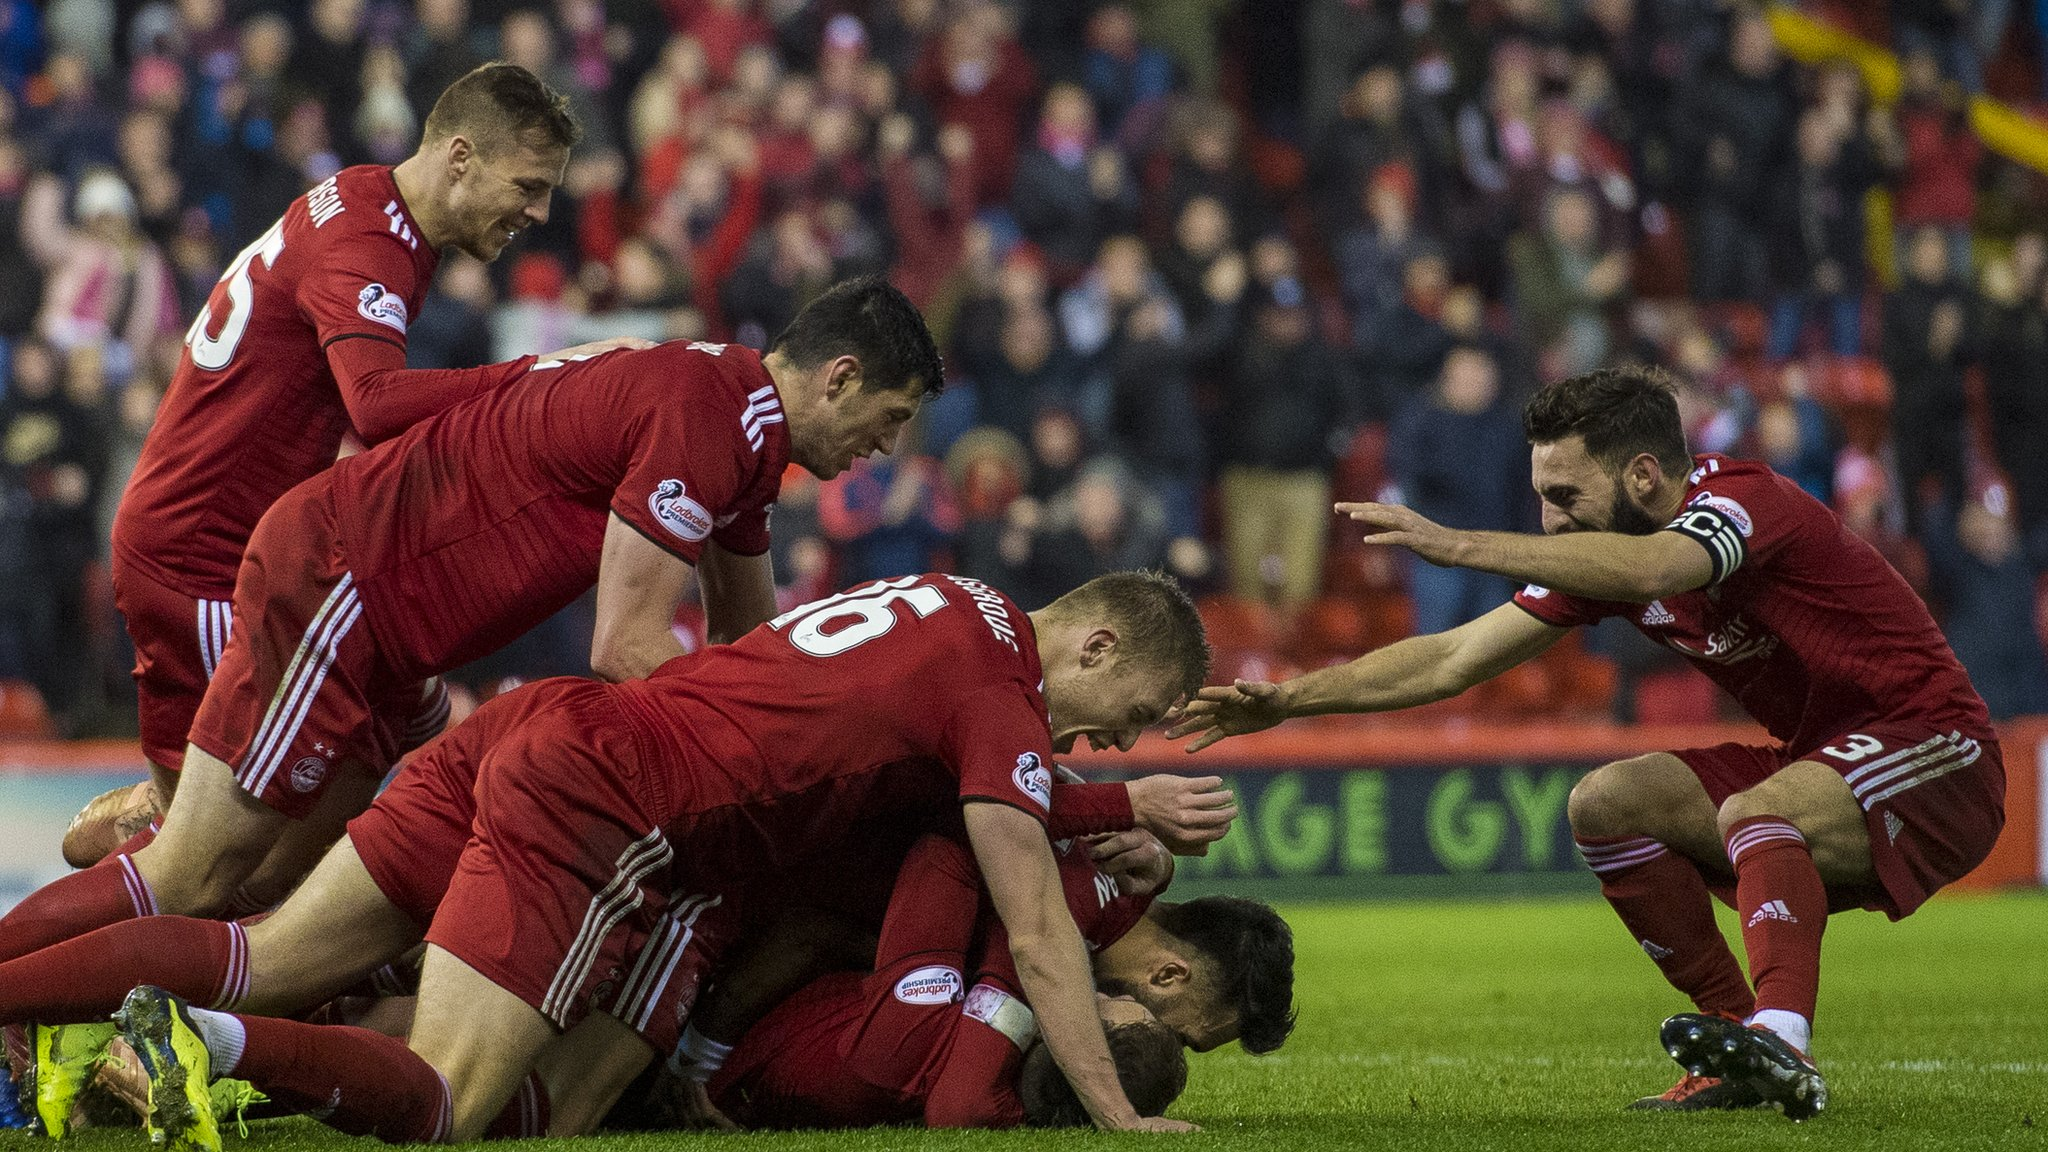 Ferguson overhead kick gives Aberdeen injury-time win over Livingston